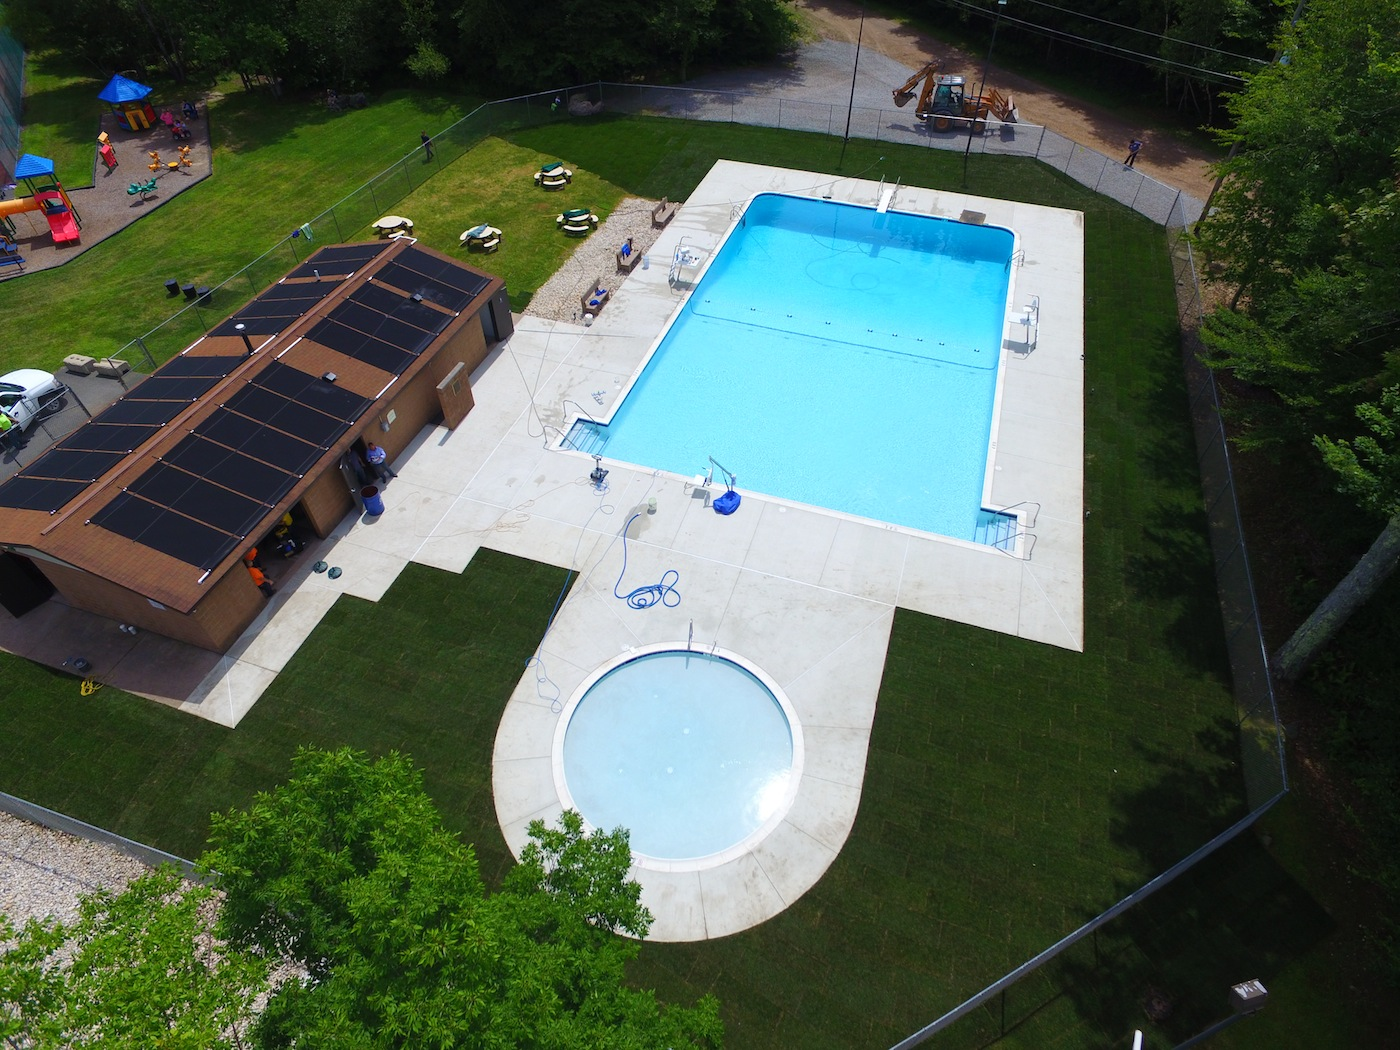 Commercial Swimming Pool Design - Home Design Ideas